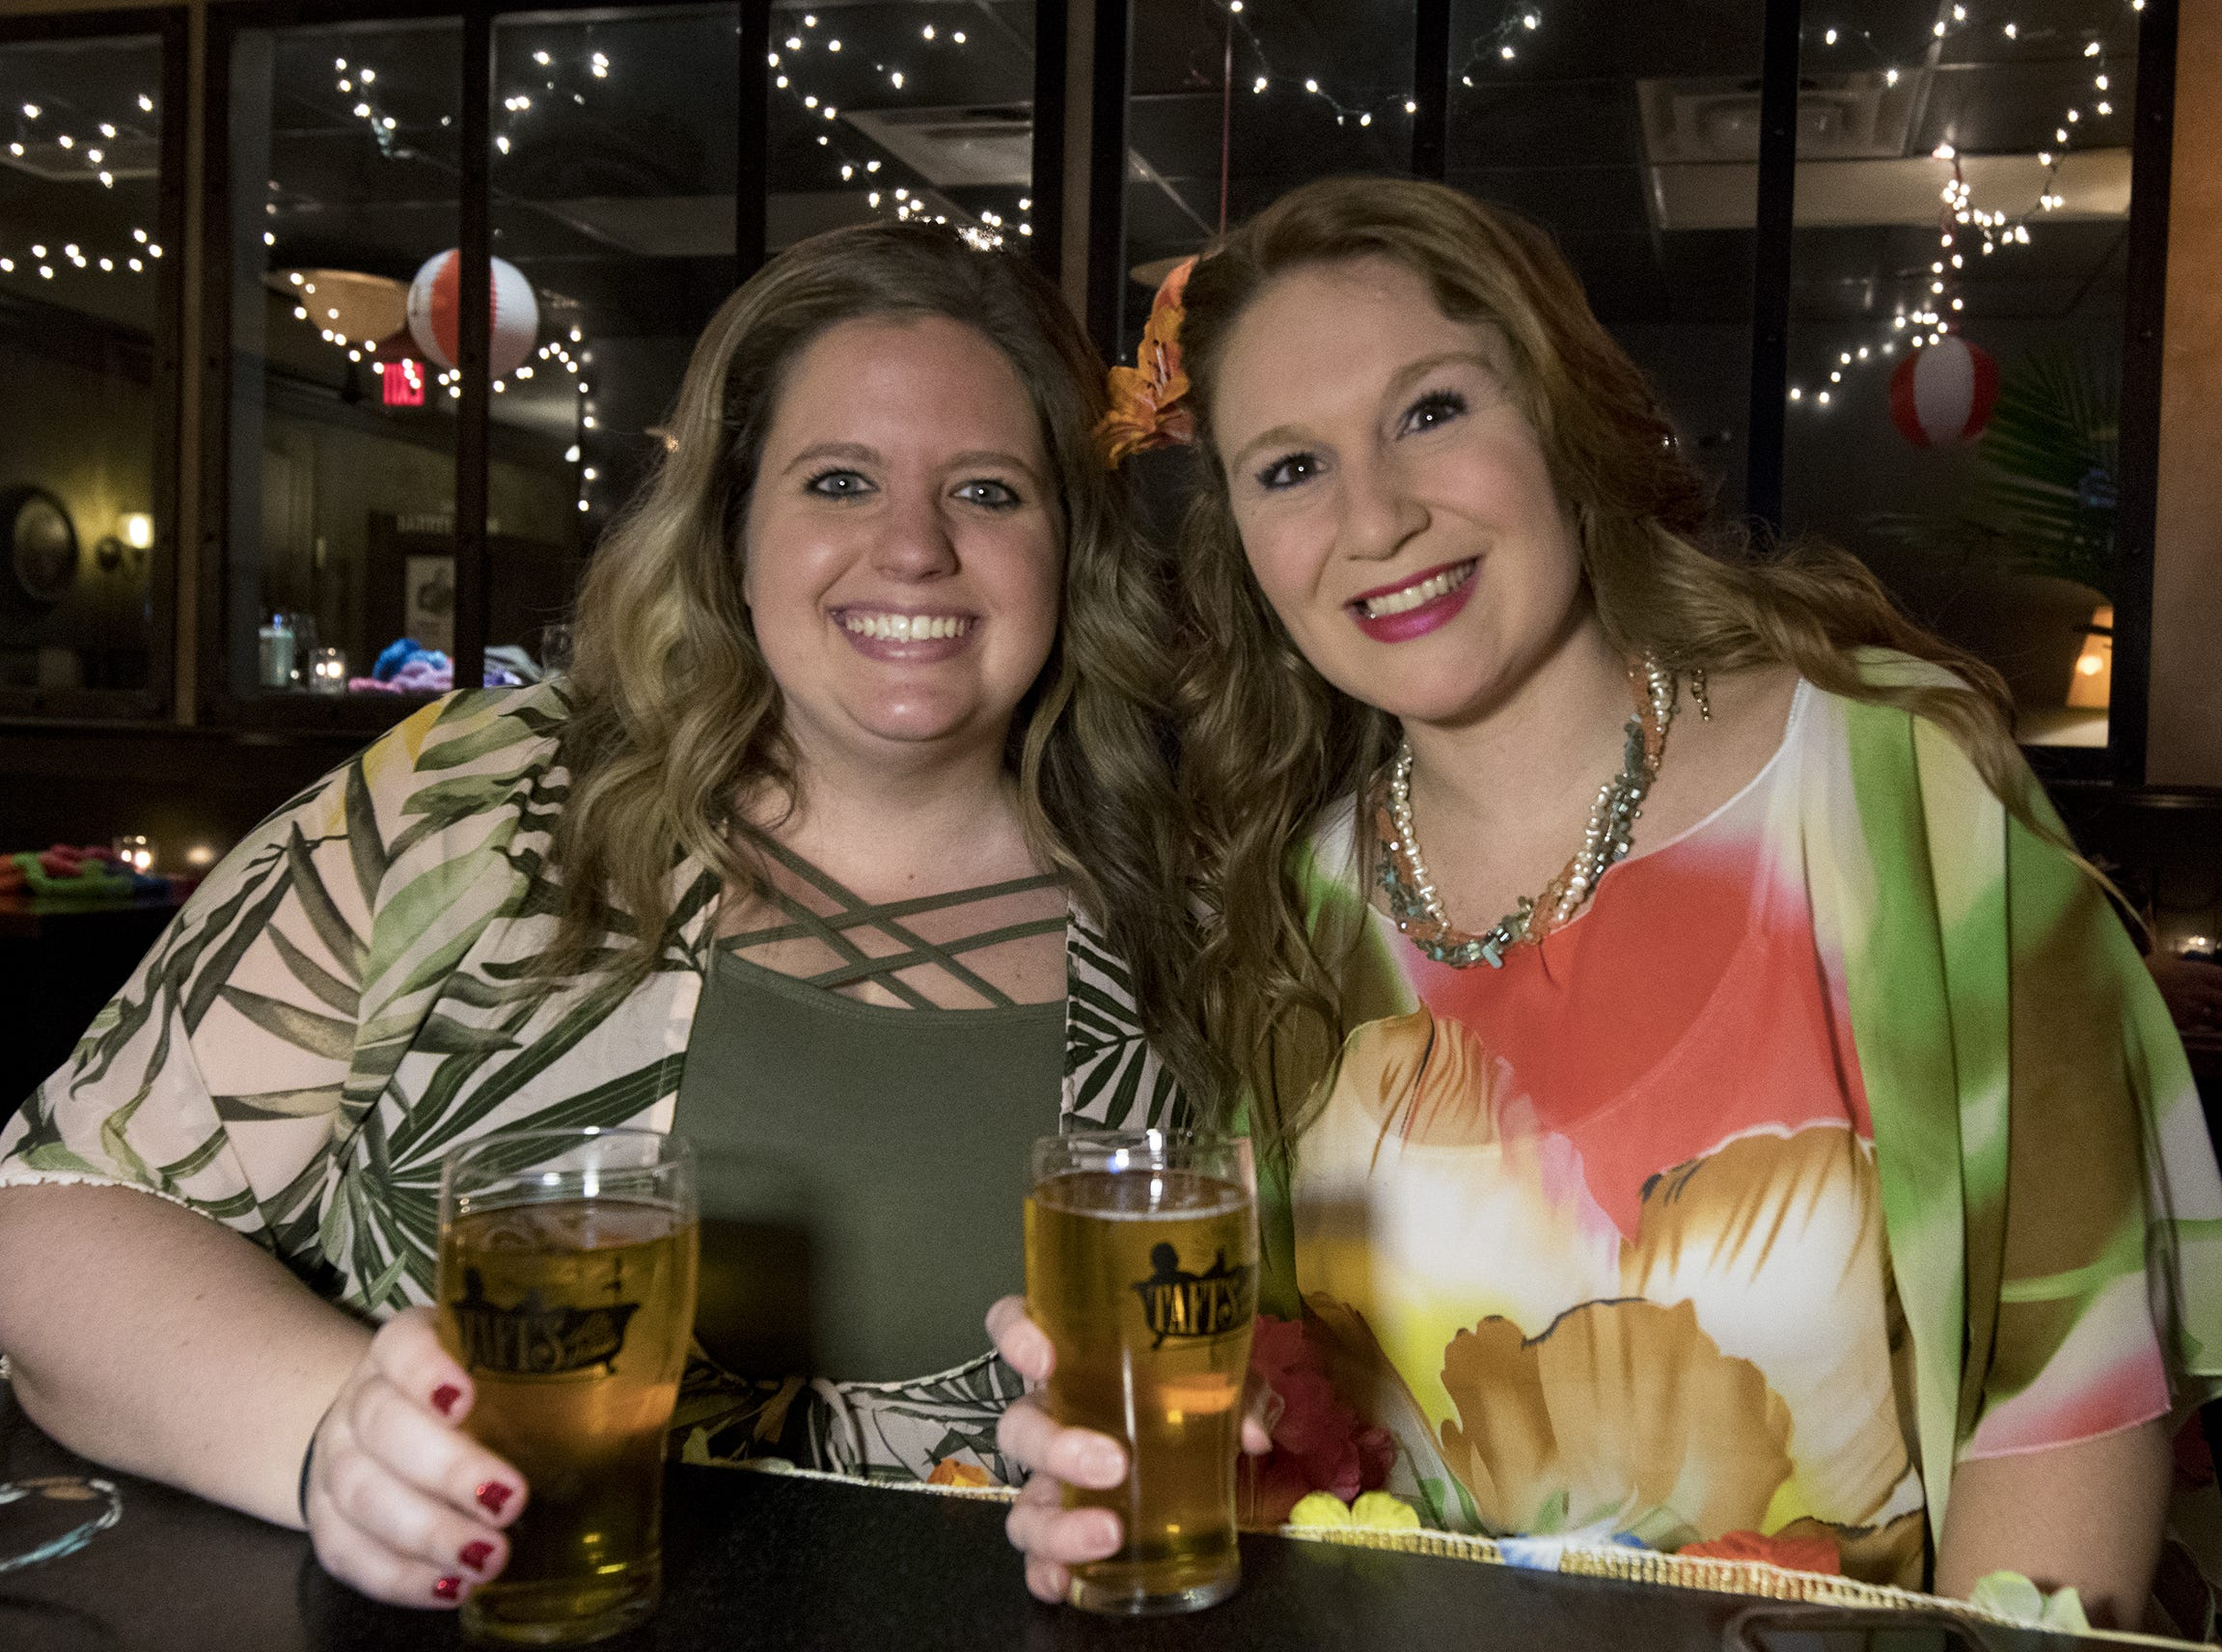 Heather Roush and Emily Phillips grab a pint during Beach Night at Taft's Ale House January 17, 2019 in Cincinnati, Ohio.